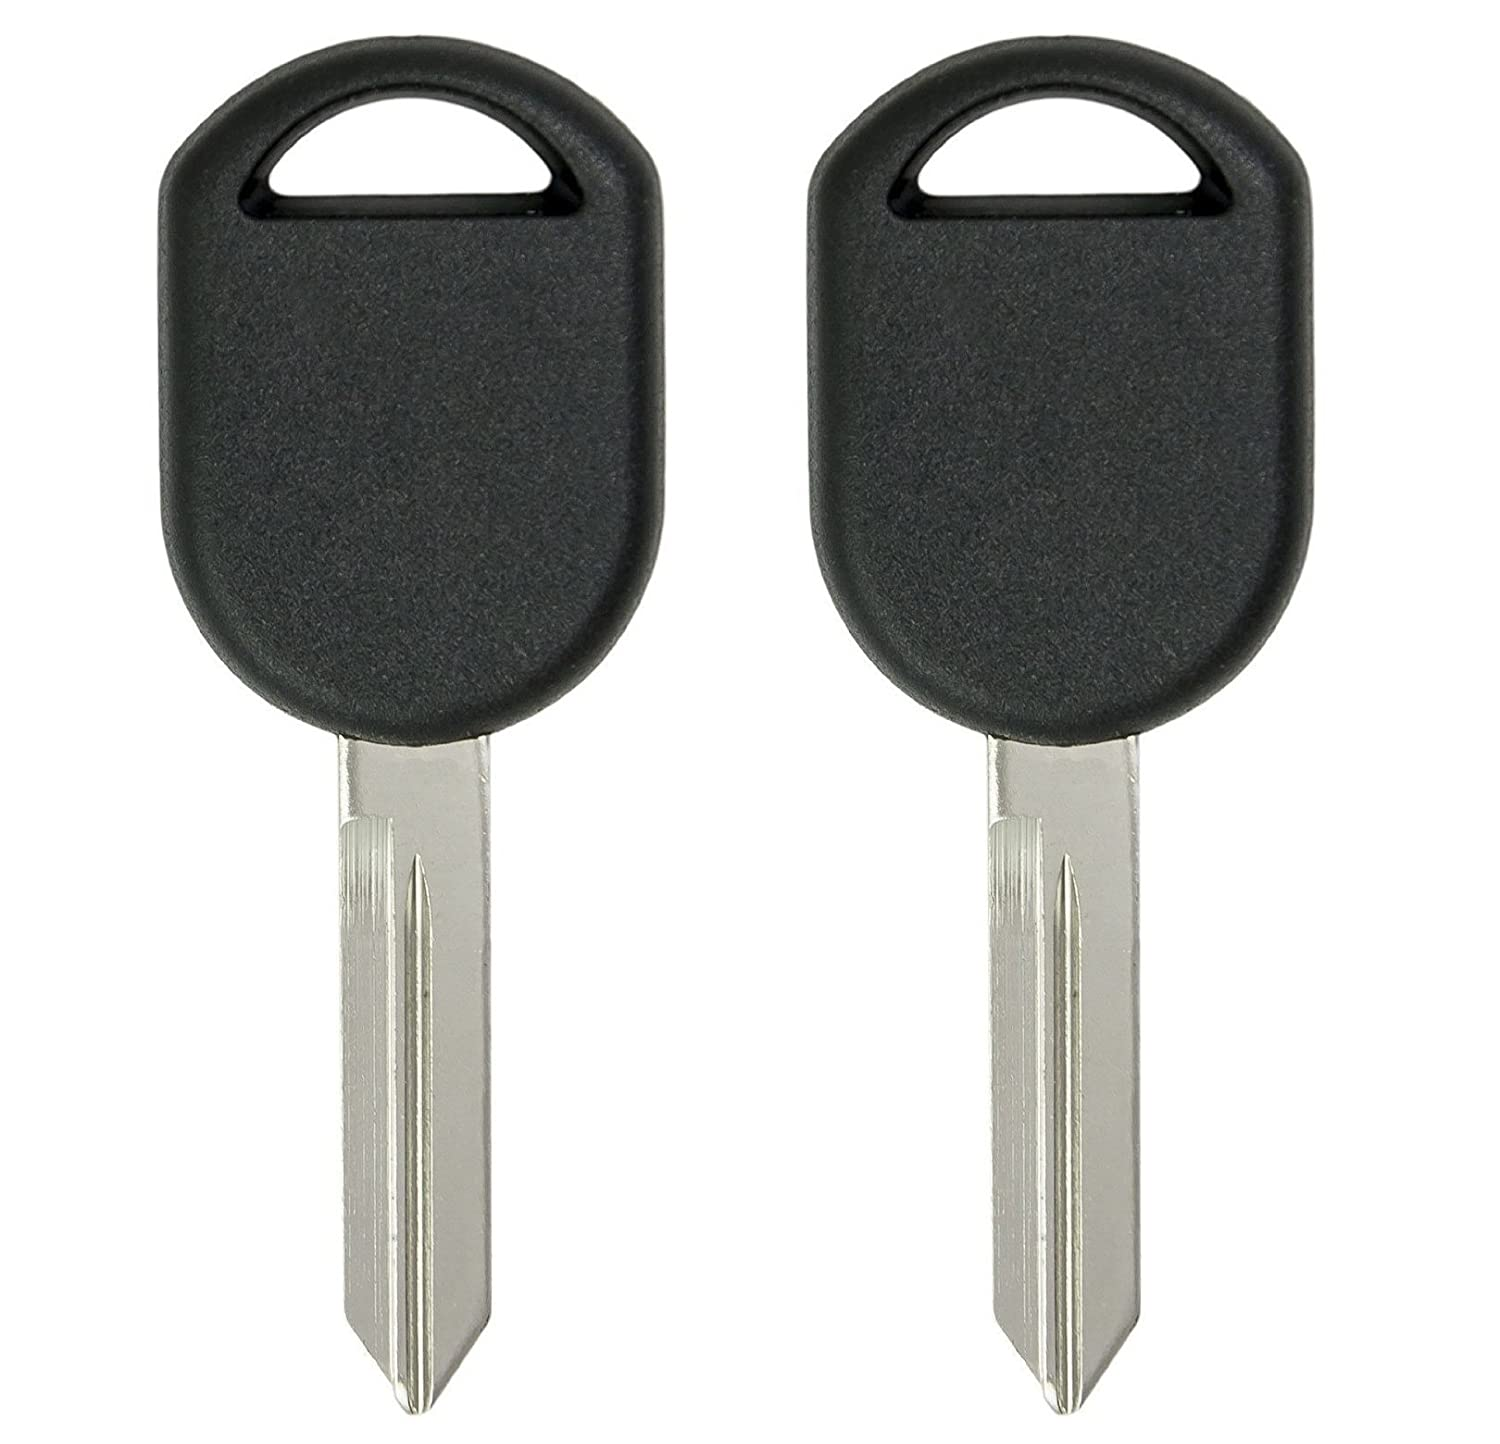 CanadaAutomotiveSupply © - 2 New Uncut Replacement 80 Bit Transponder Ignition Car Keys for Select Ford Lincoln w/Free DIY Programming Guide